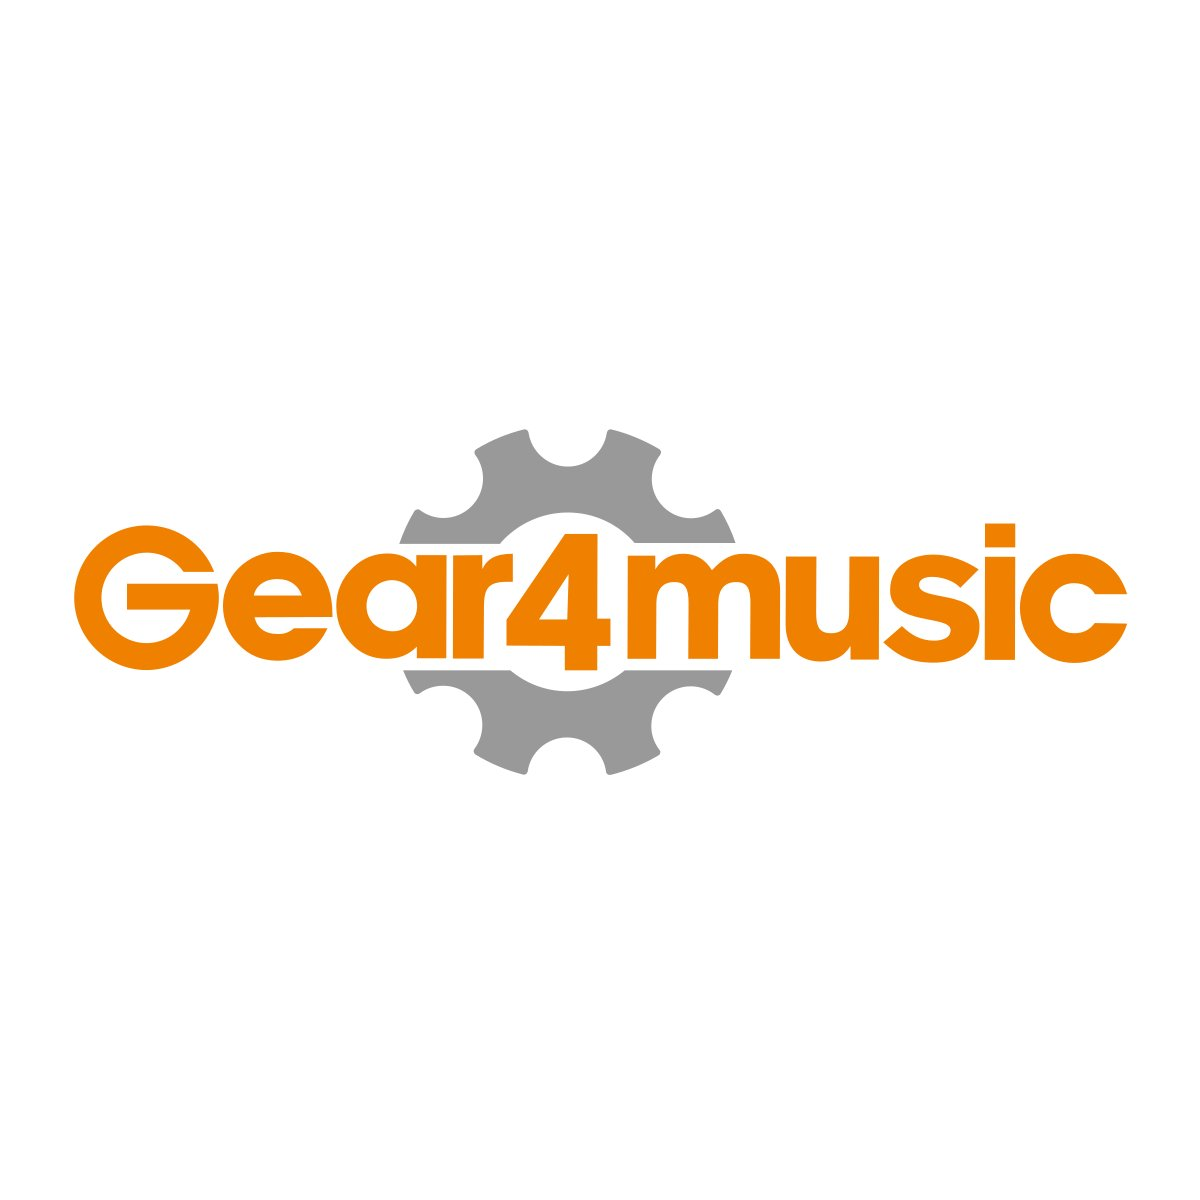 MK-3000 Key-Lighting Keyboard by Gear4music